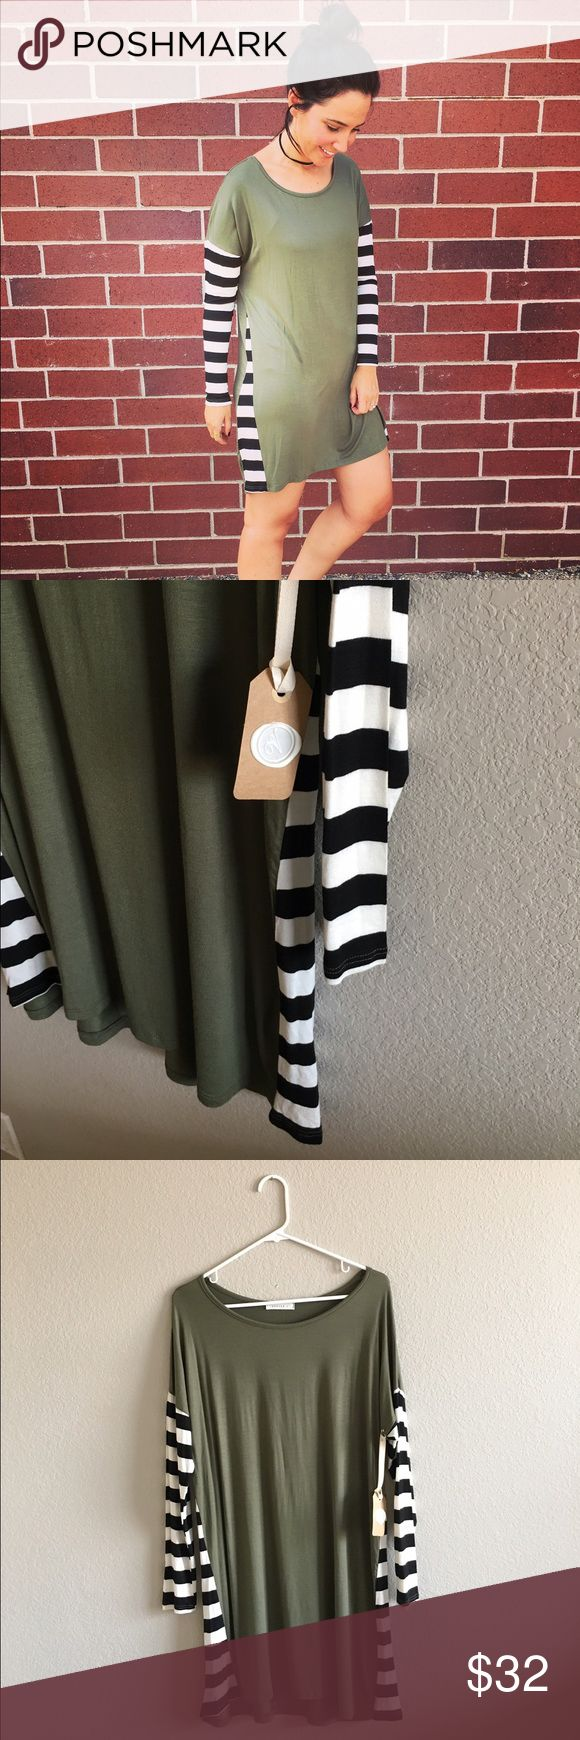 Striped Sleeve Dress - Last One 96% rayon and 4% spandex. Made in the USA. Olive dress with black and white striped sleeves and side stripe detail. 34.5 inches from shoulder top to bottom hem. Dresses